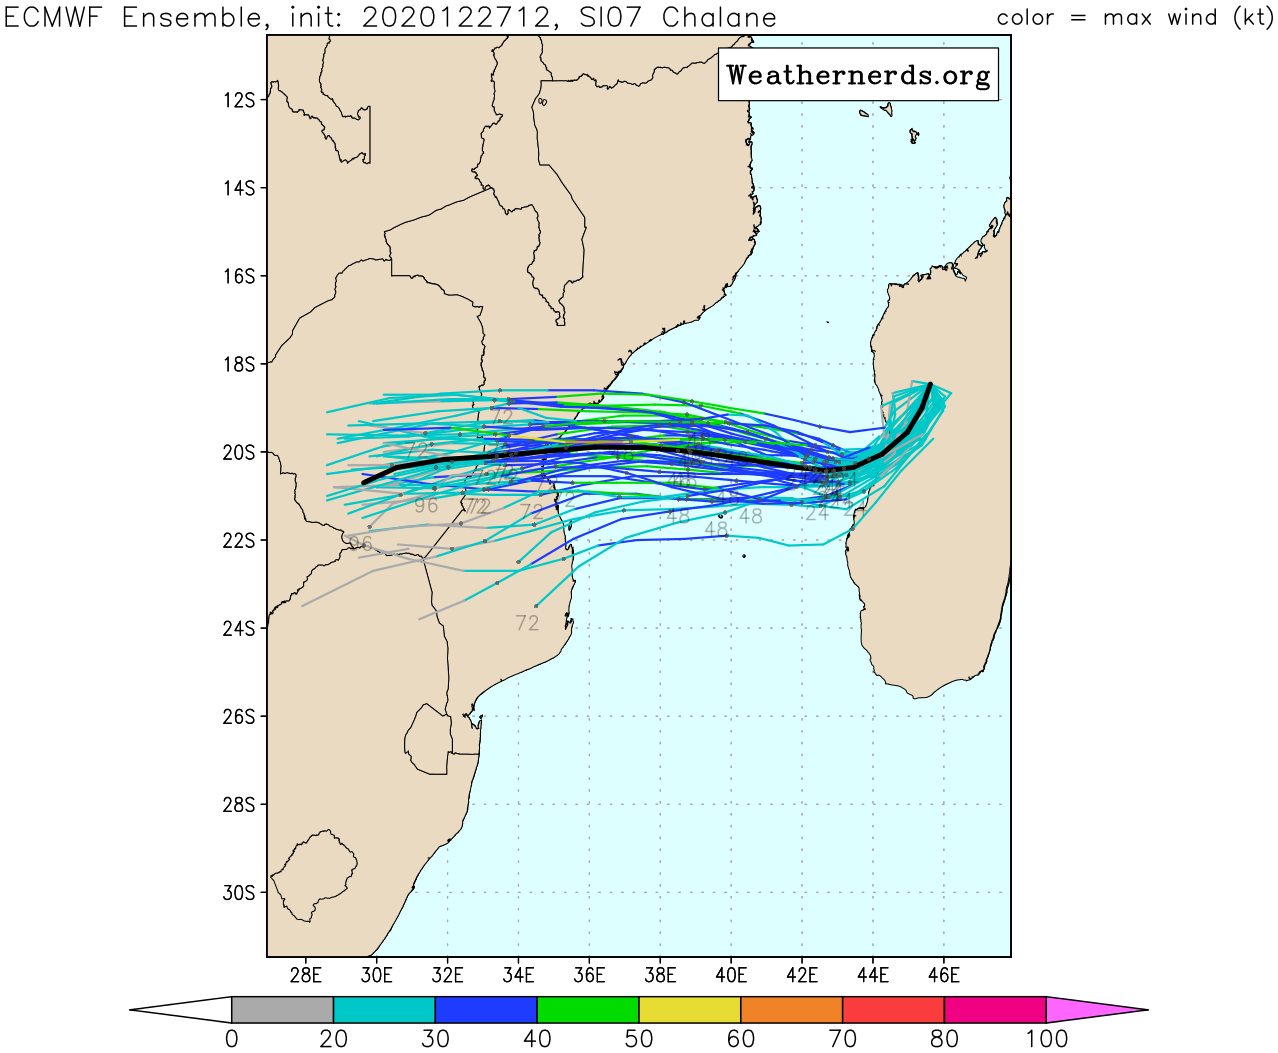 ECMWF SHOWING POSSIBLE RAPID INTENSIFCATION PERIOD SHORTLY BEFORE LANDFALL OVER MOZAMBIQUE